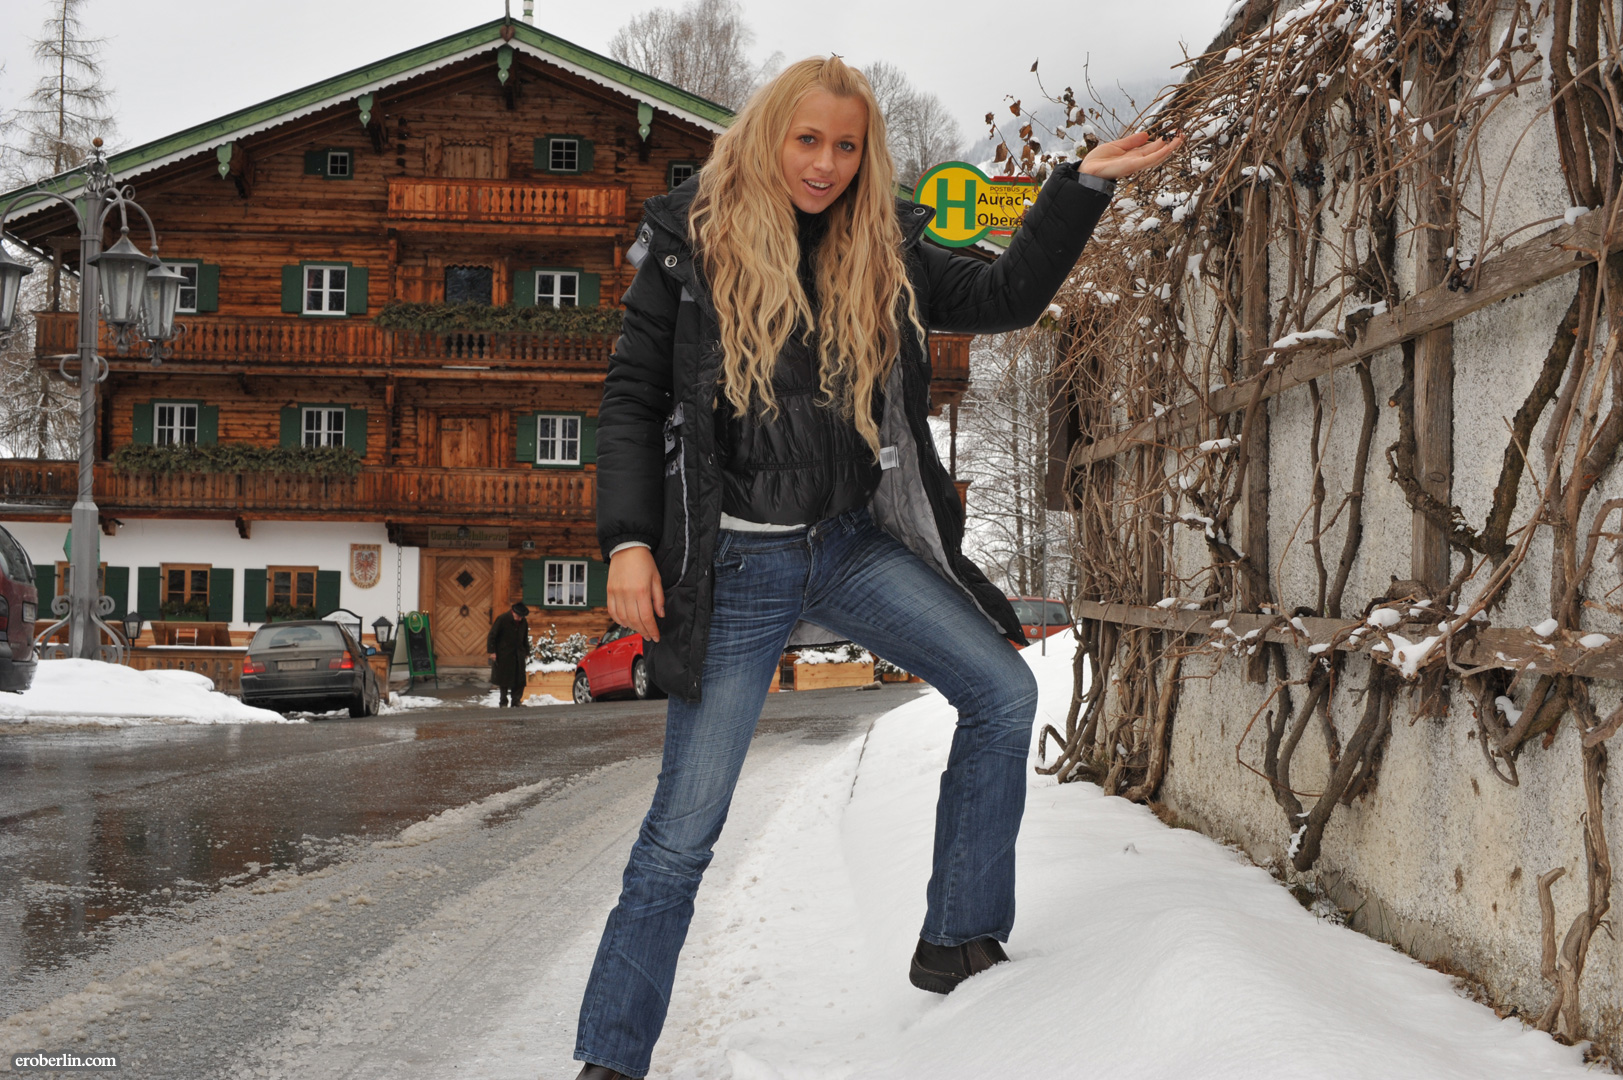 anna-safina-winter-flash-in-public-eroberlin-10